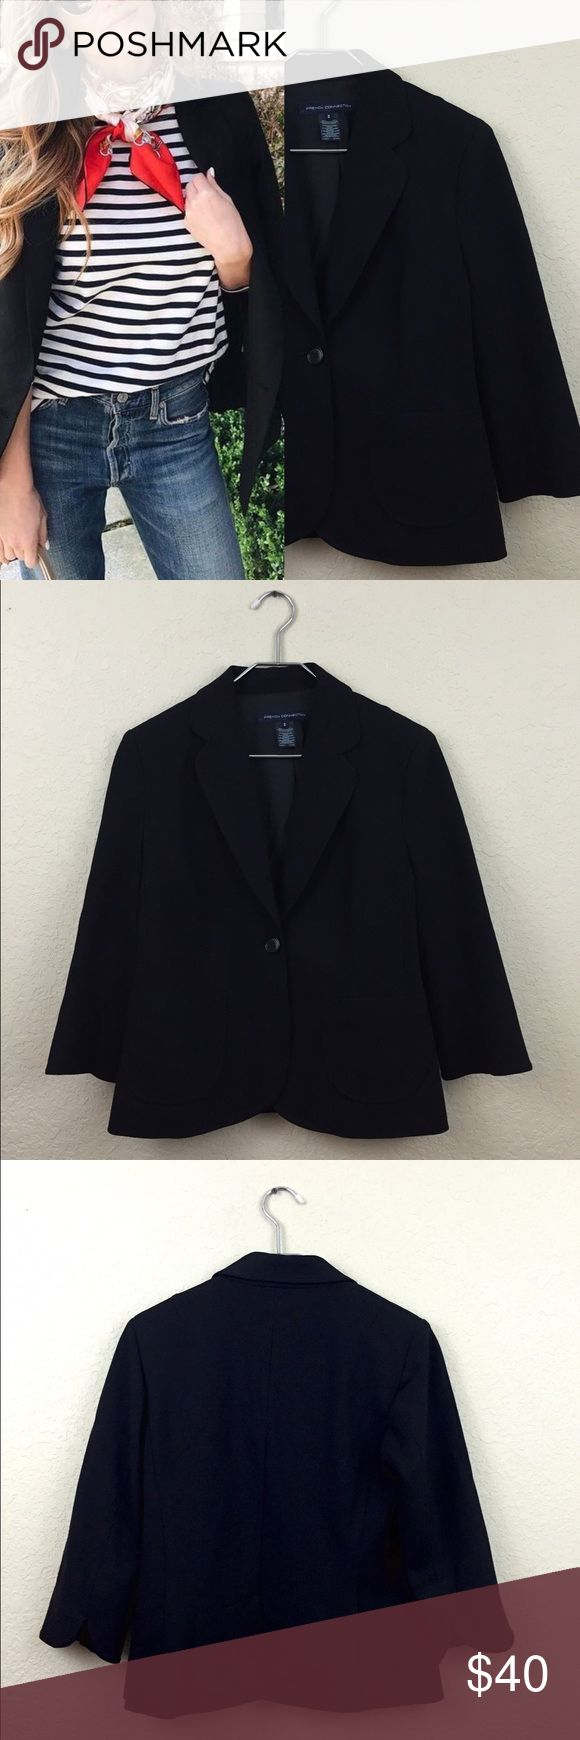 French connection blazer • French connection  • rayon viscoseblend  • No damages  • Size 8 • $190 • Fully lined • Quarter sleeve • Tulip hem sleeve French Connection Jackets & Coats Blazers